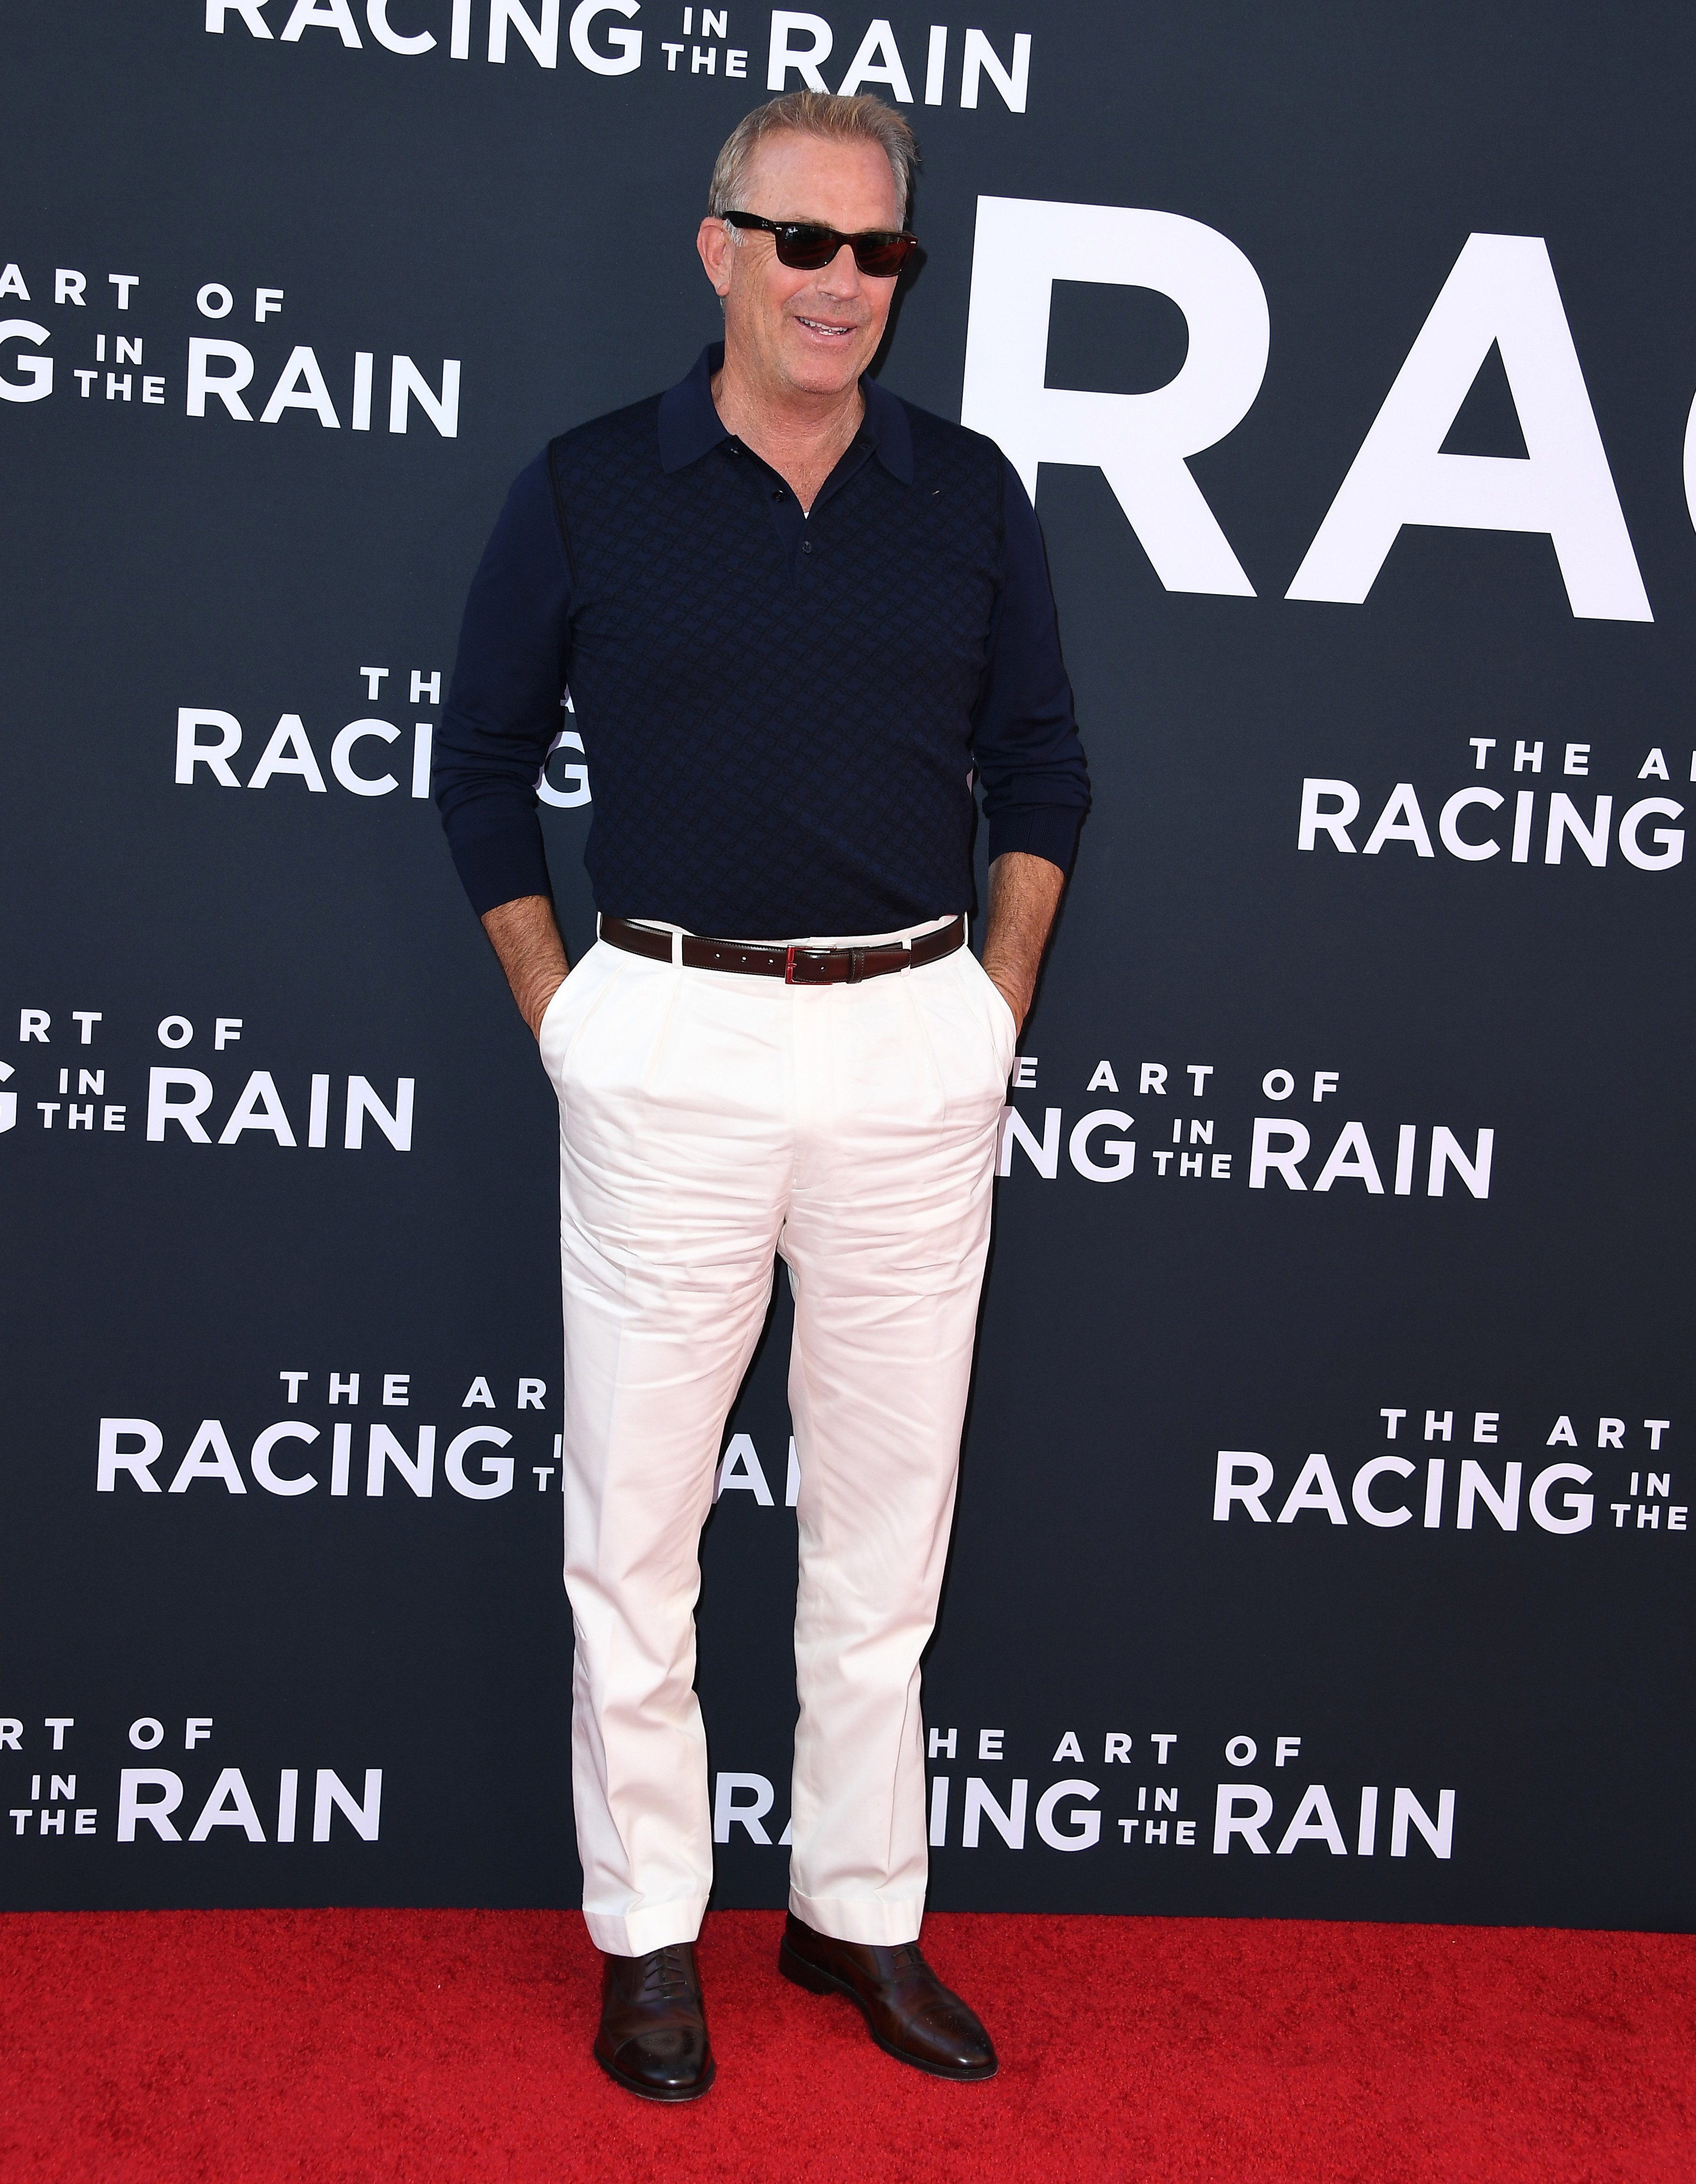 """Kevin Costner at the Premiere Of 20th Century Fox's """"The Art Of Racing In The Rain"""" at El Capitan Theatre on August 01, 2019 in Los Angeles, California.   Source: Getty Images"""